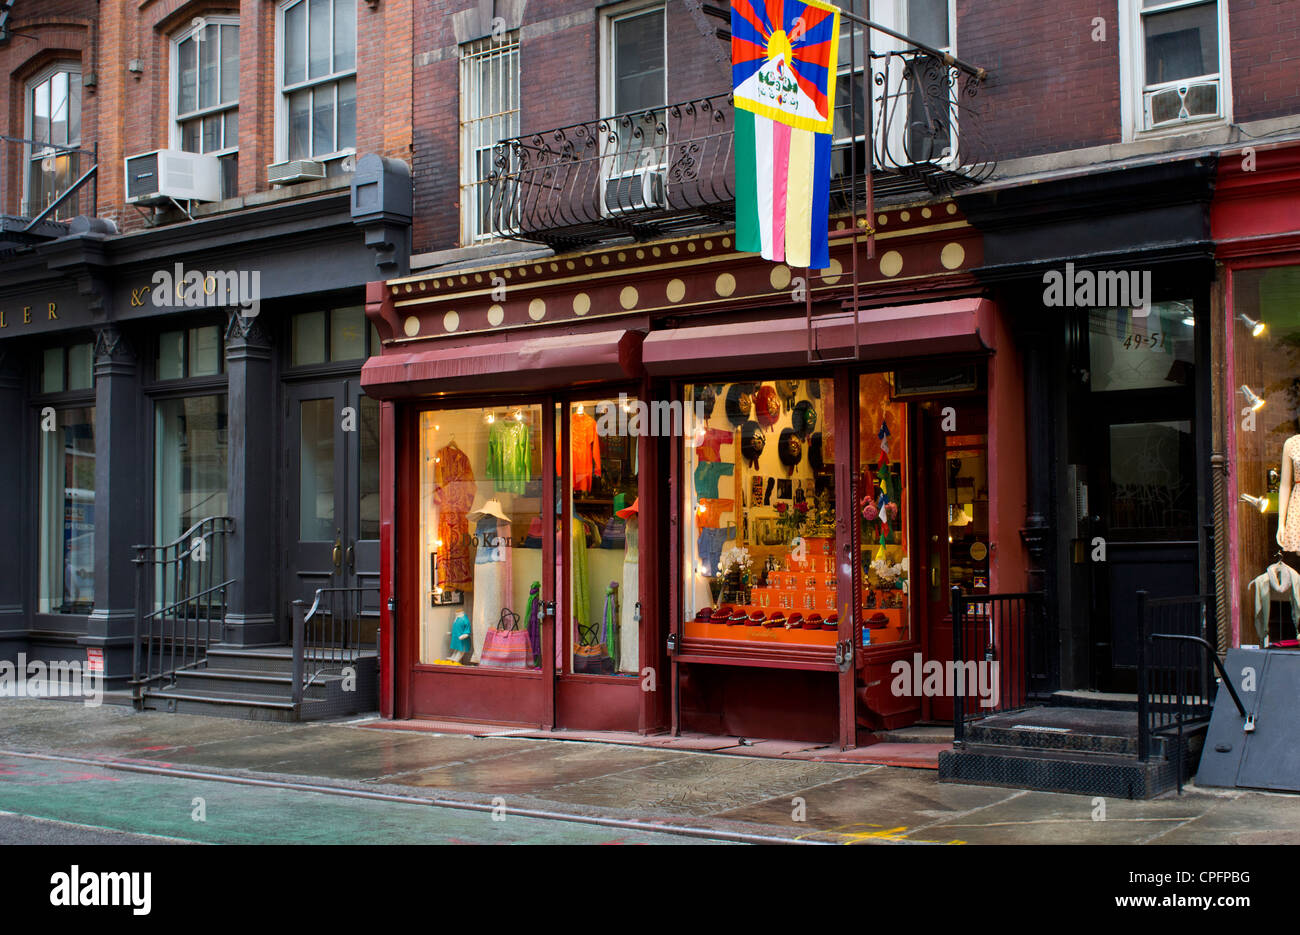 The Do Kham shop in NYC featuring items from Tibet - Stock Image